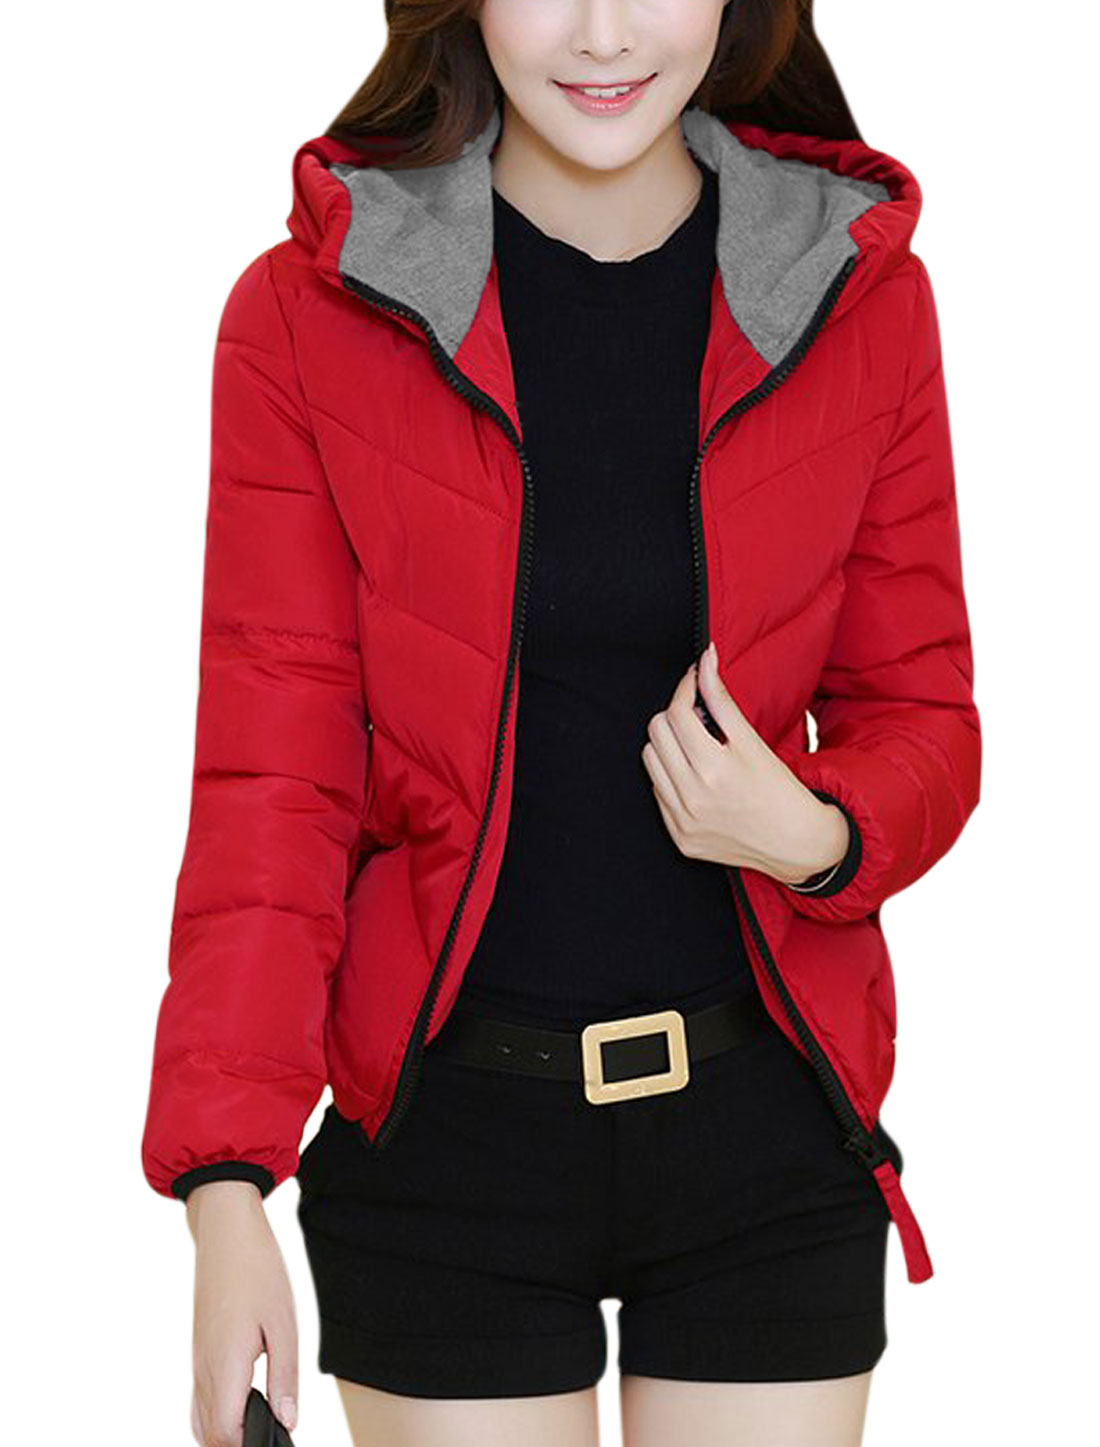 Women Zip Up Long Sleeve Stretchy Hem Leisure Down Jacket Red M